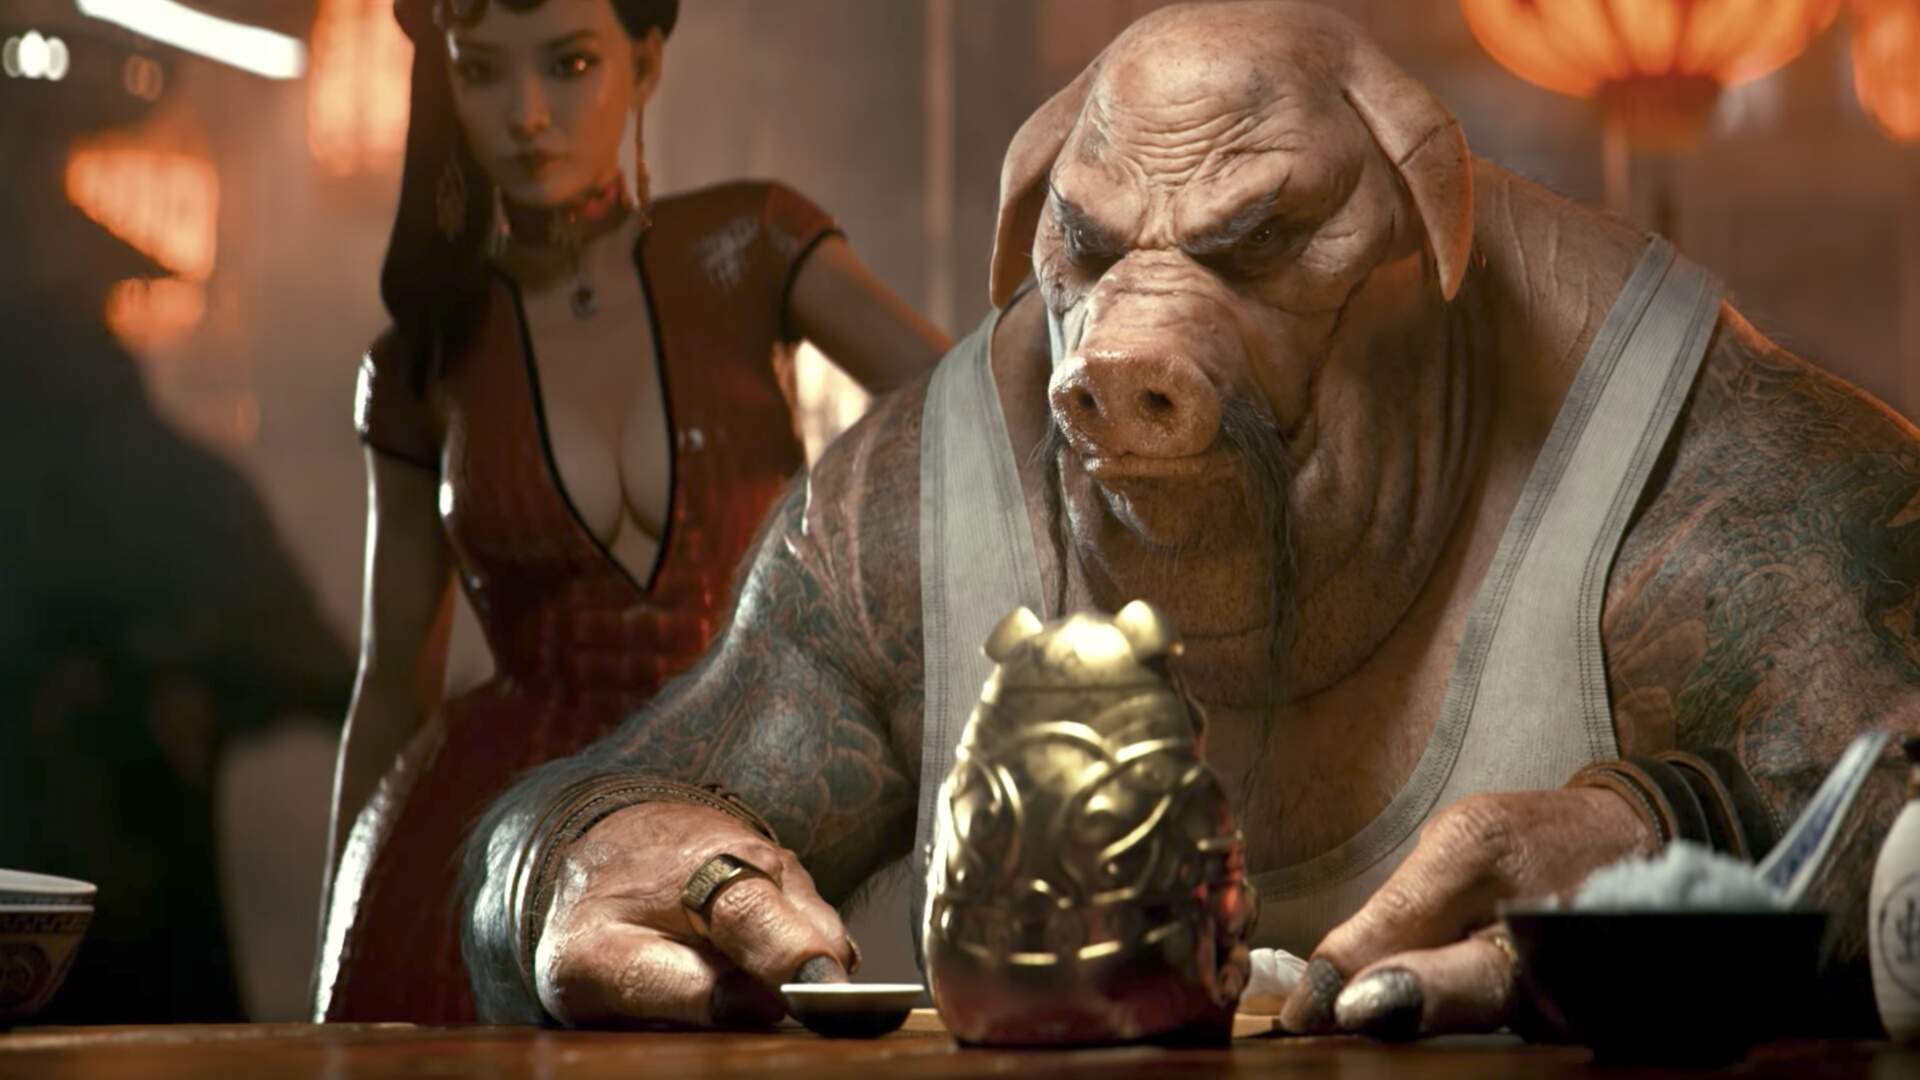 Report: Michel Ancel Accused of Abusive, Disruptive Practices on Beyond Good & Evil 2